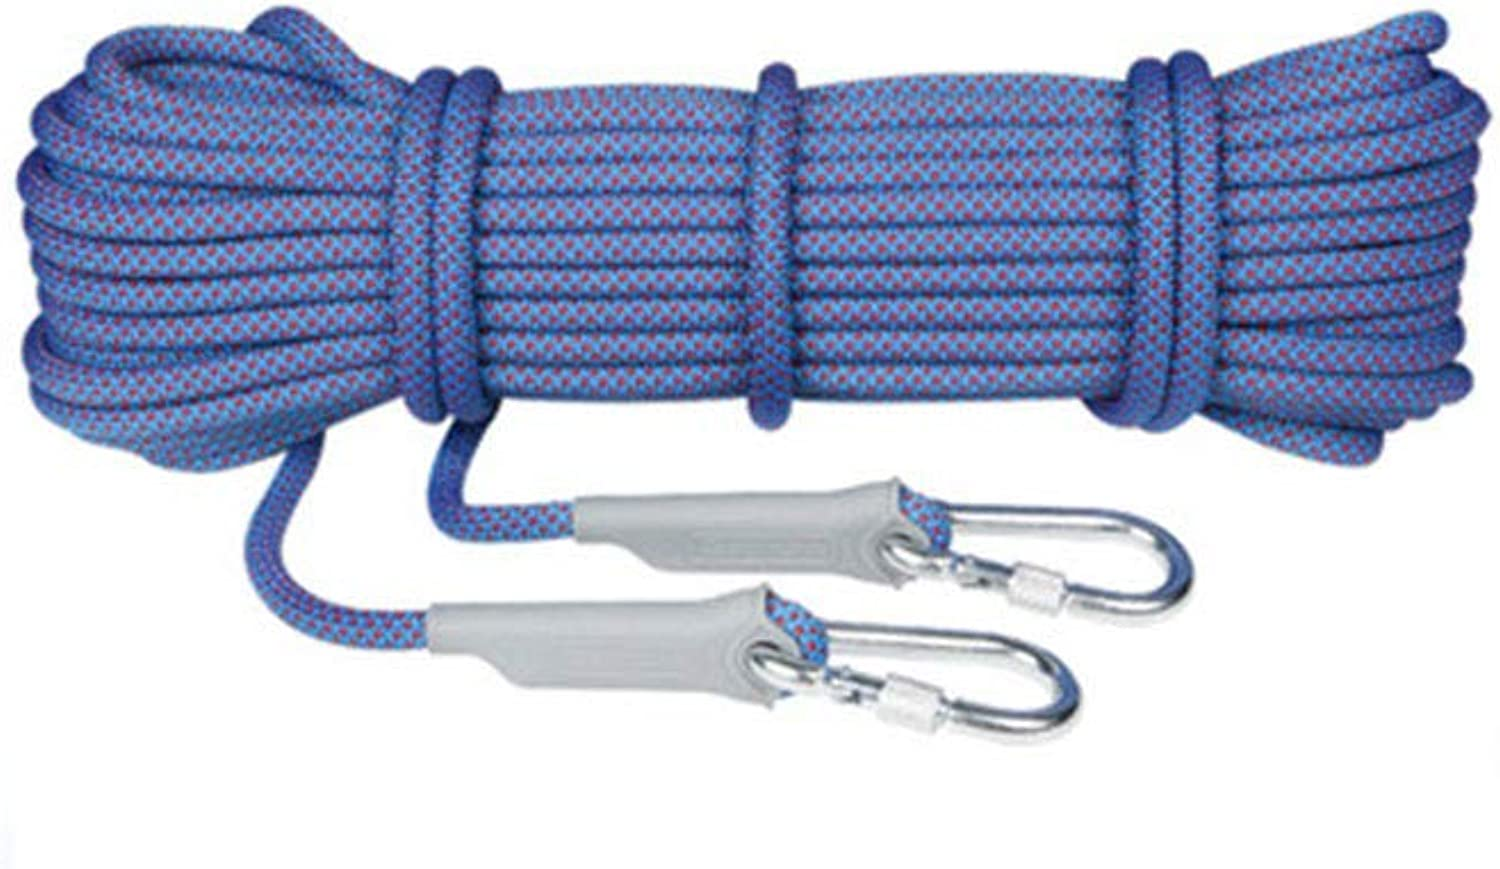 Q&Z Safety Rope 10,20,30M Outdoor Survival Climbing Rope High Strength Professional Rappelling Rope with 2 Carabiner for Fire Rescue Hiking Emergency Escape (8 10.5 12mm)